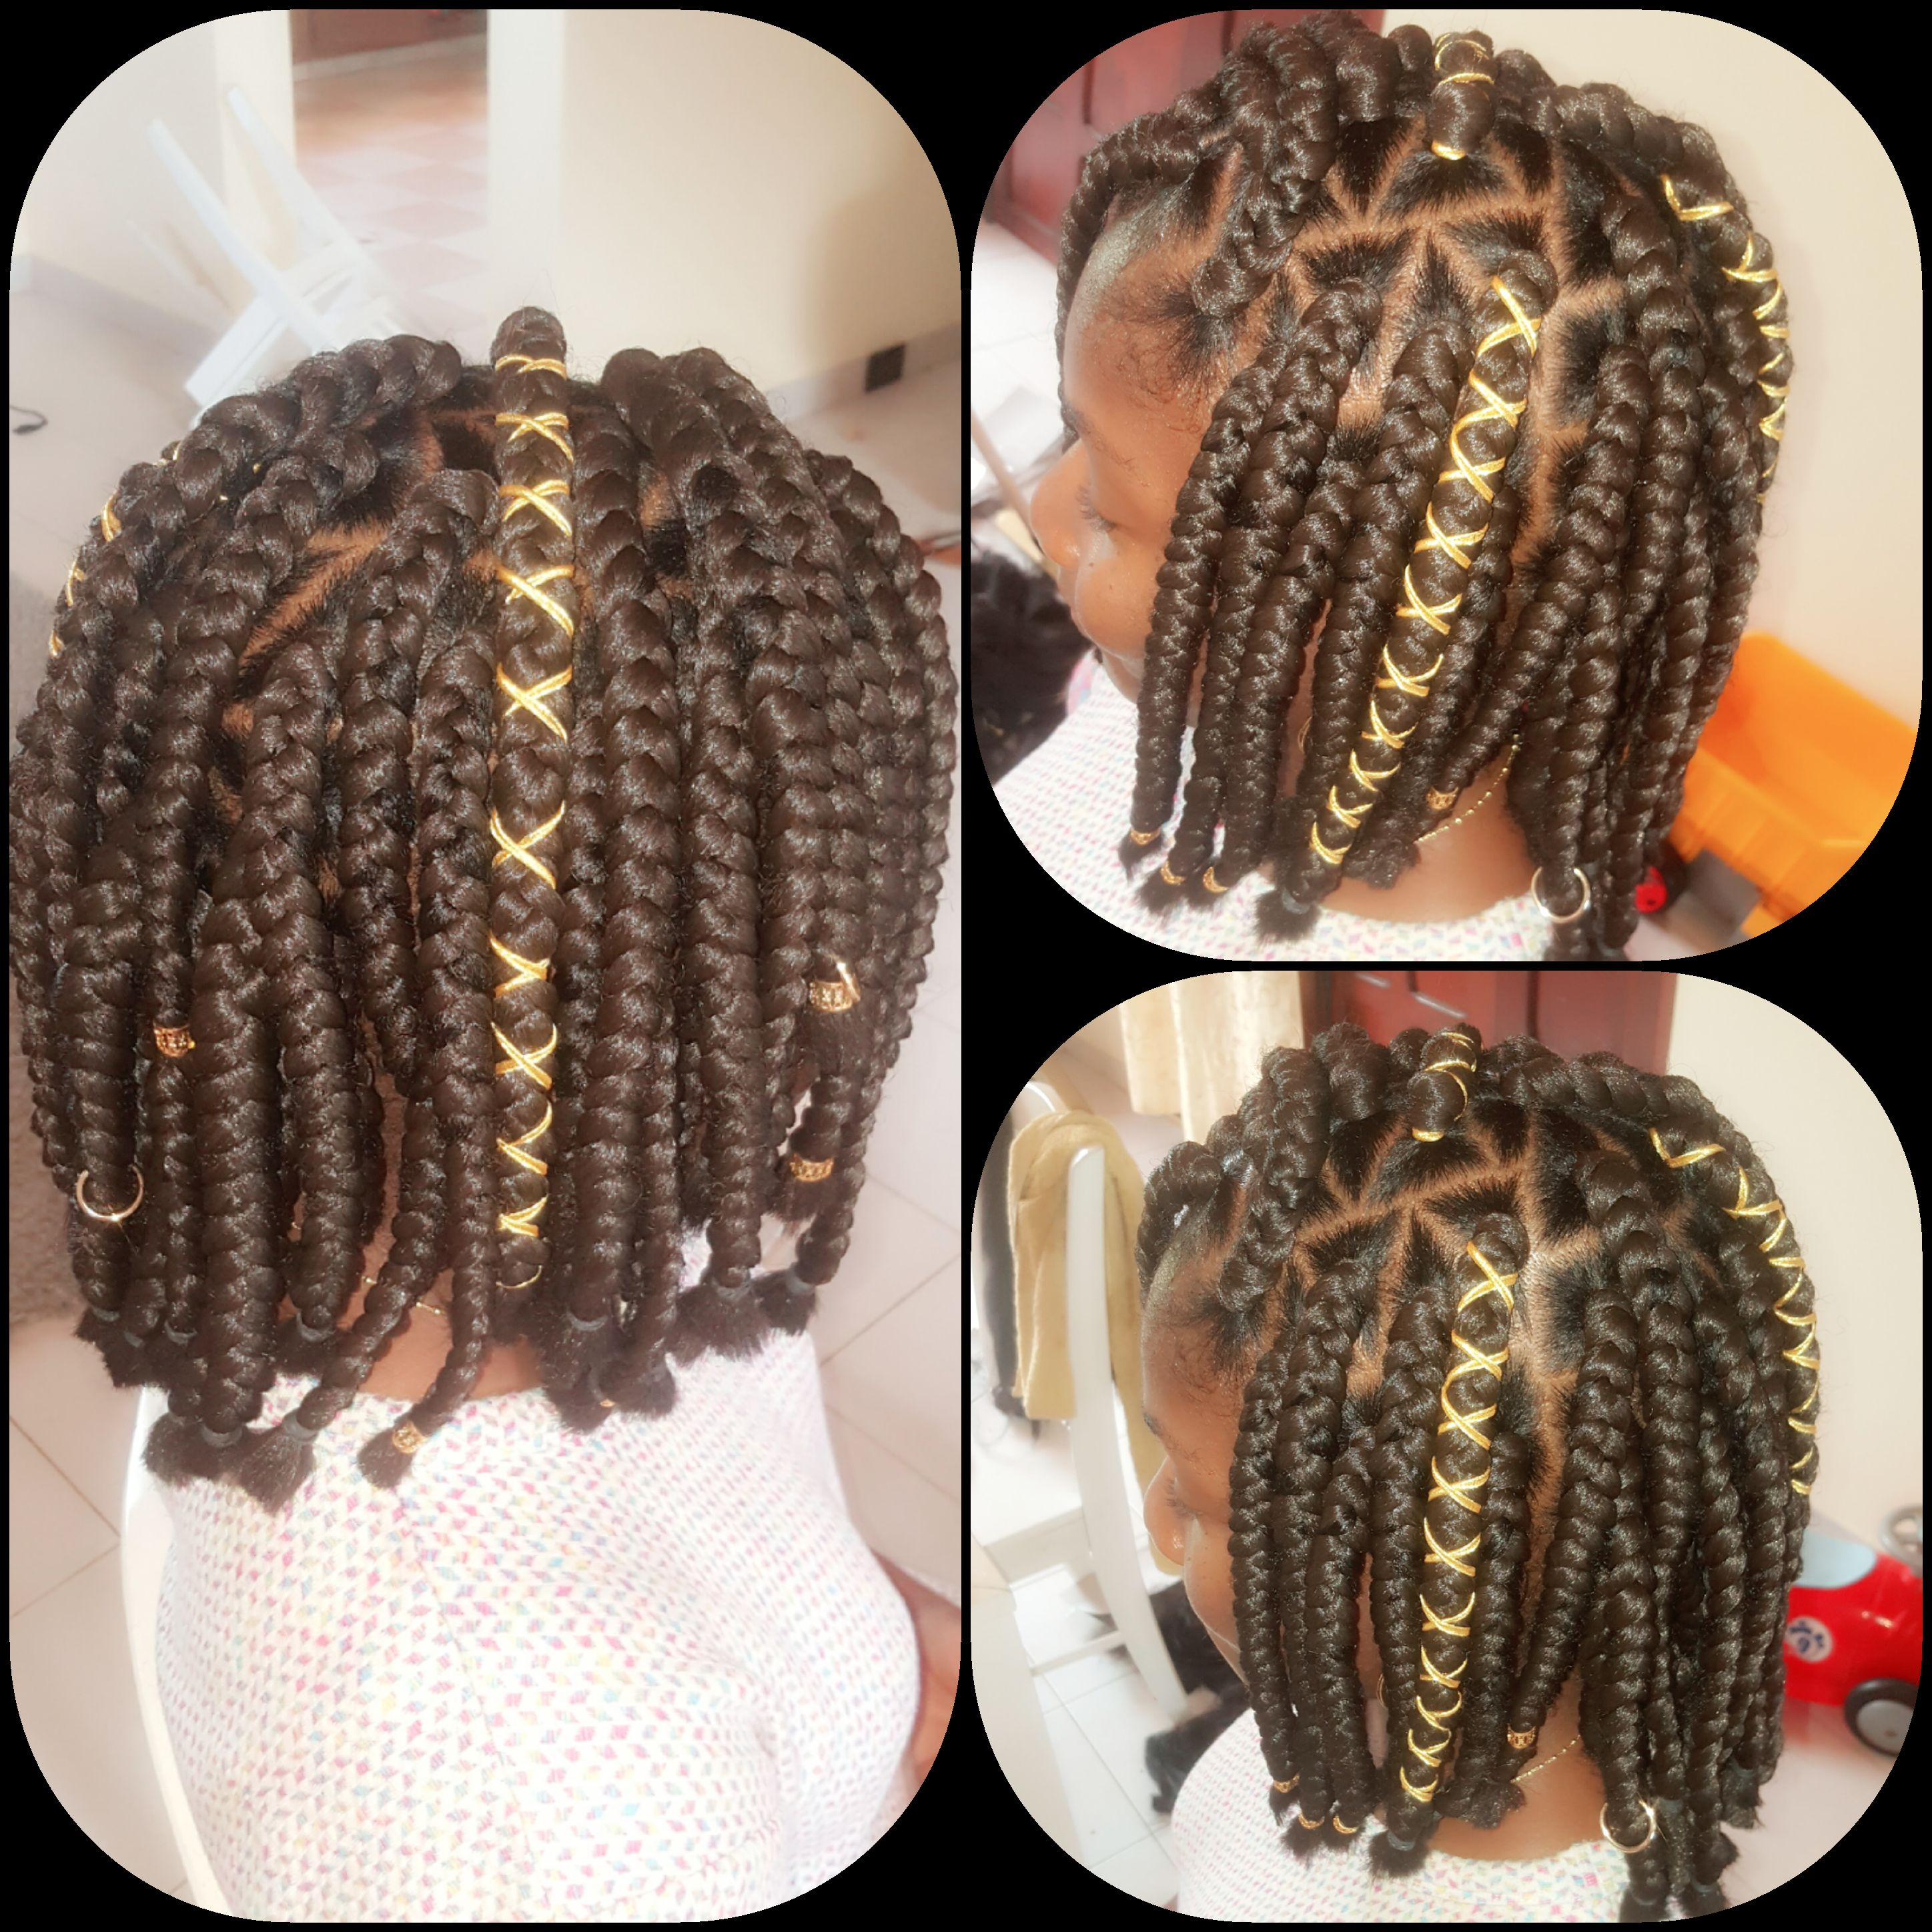 salon de coiffure afro tresse tresses box braids crochet braids vanilles tissages paris 75 77 78 91 92 93 94 95 PEYMQWIC